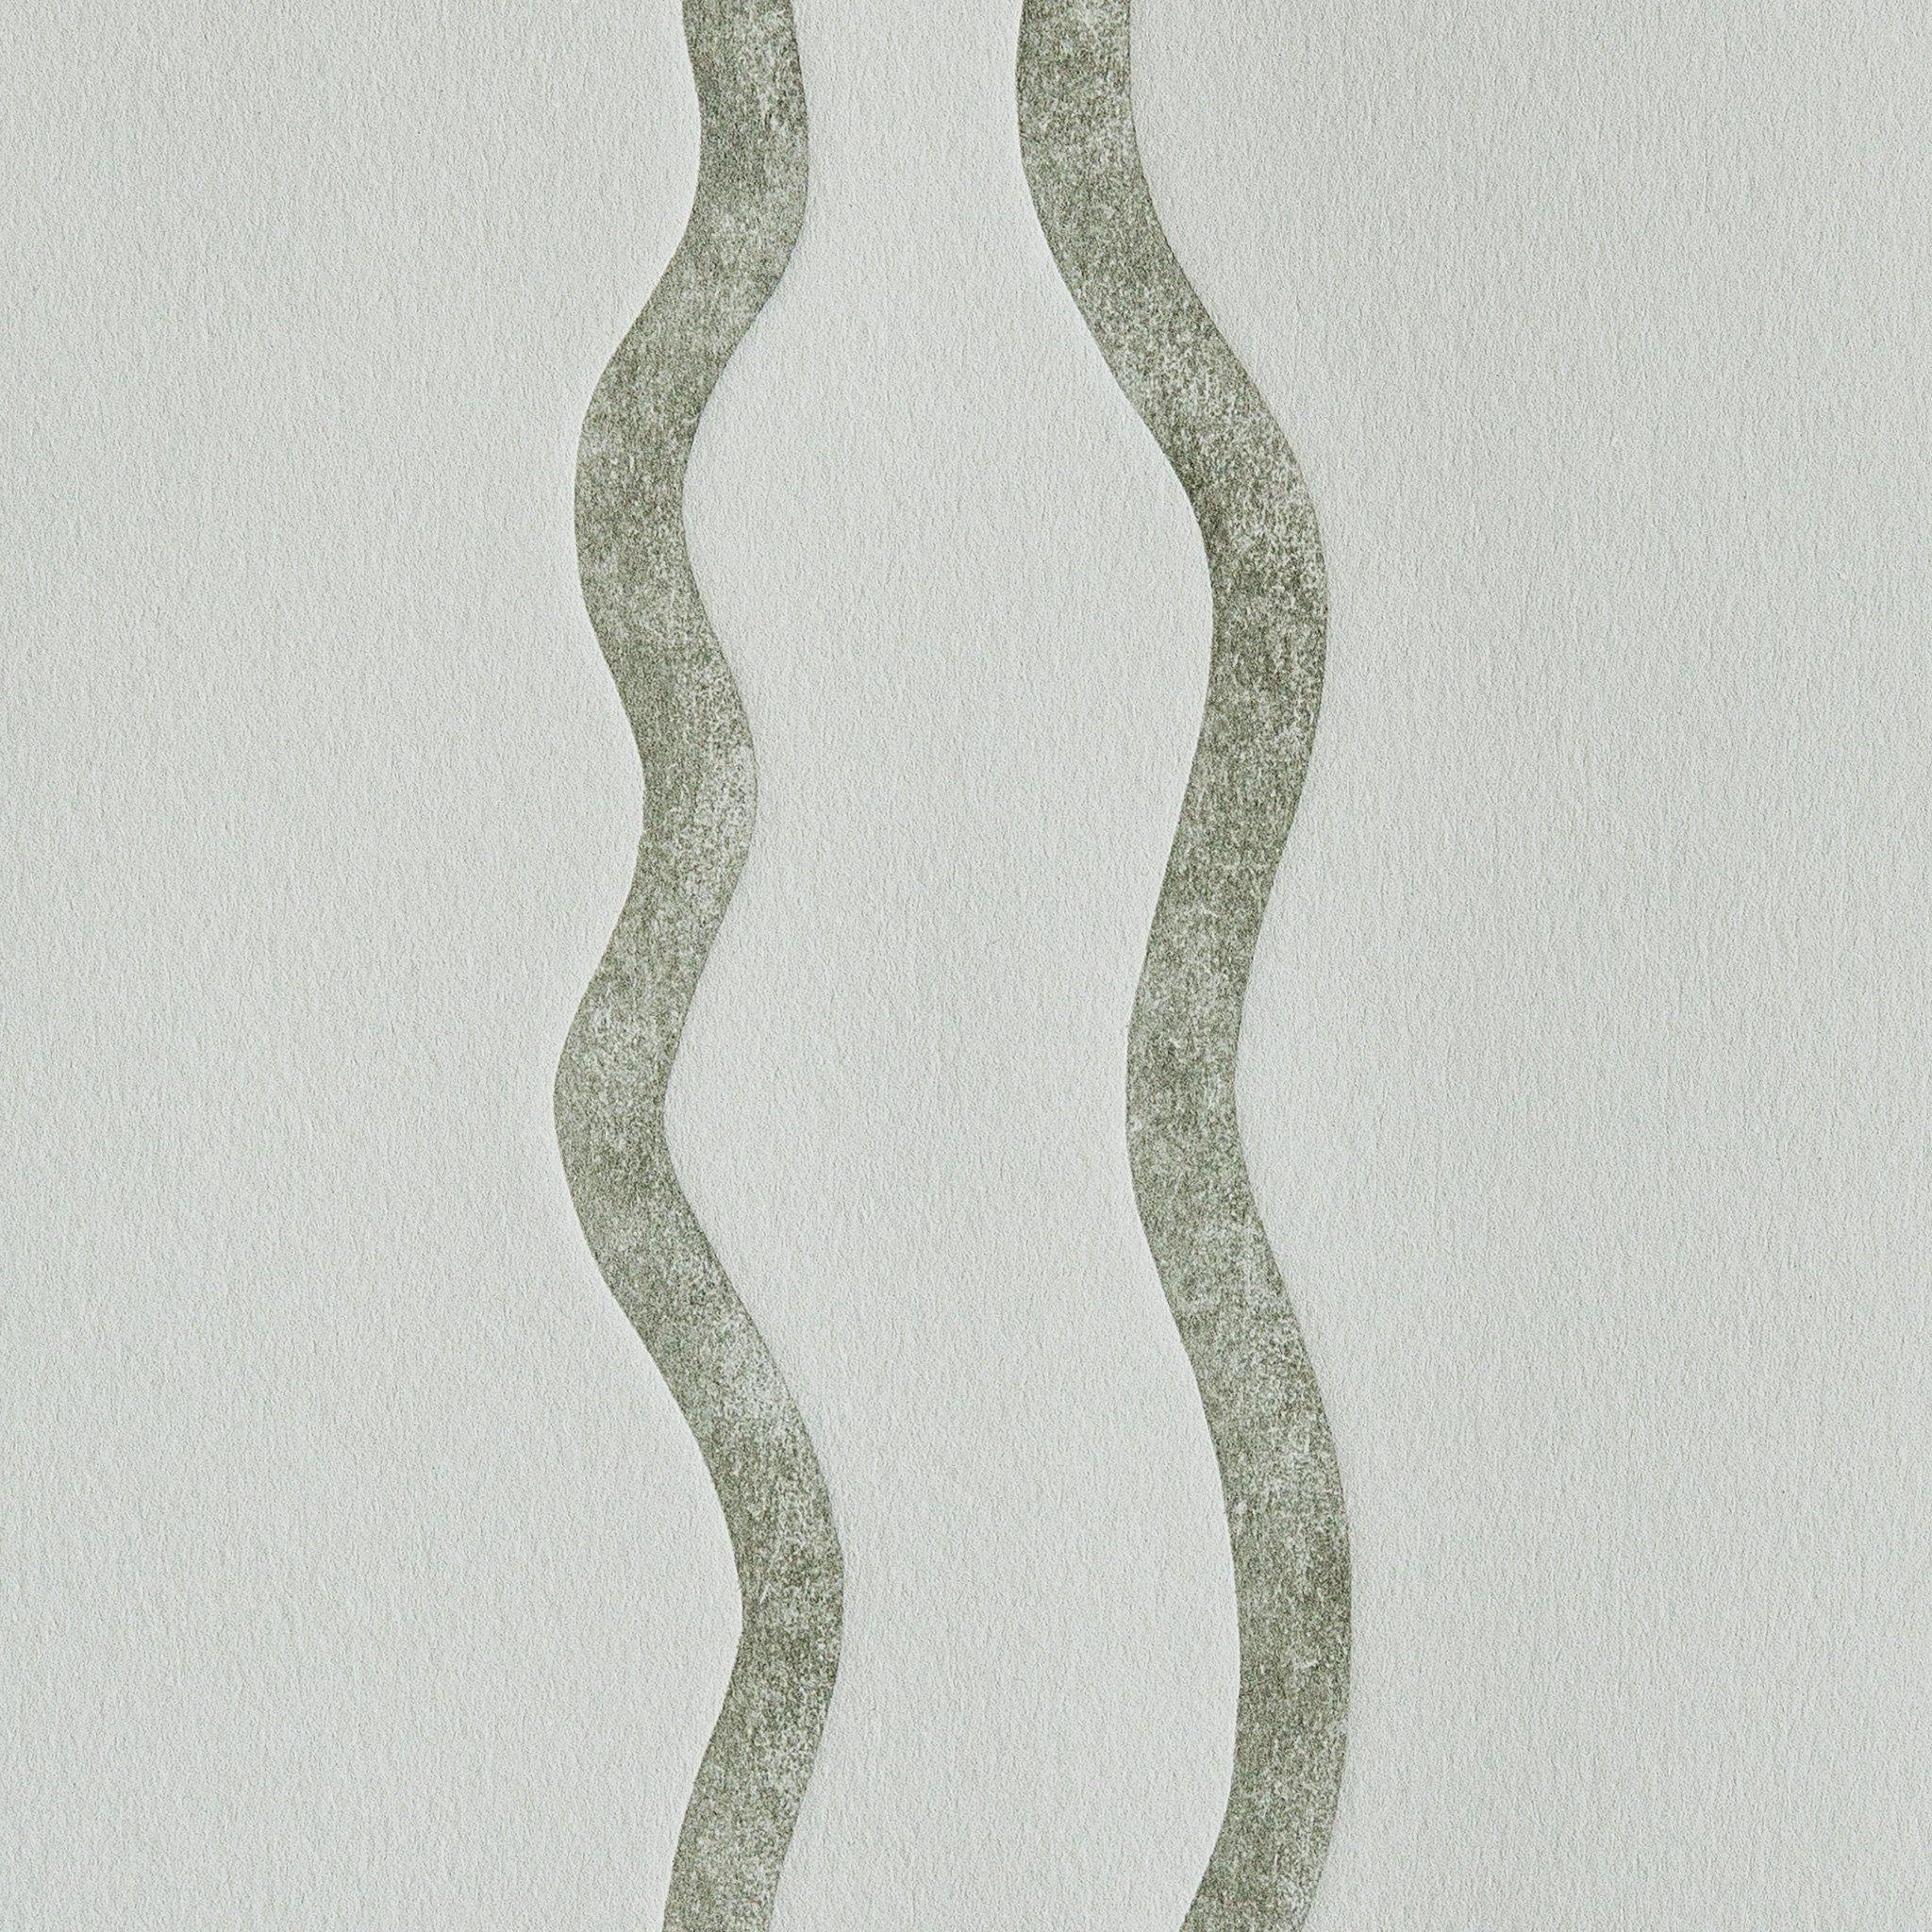 Vase No. 12, Original Work on Paper  by  Vase No. 12 Tappan